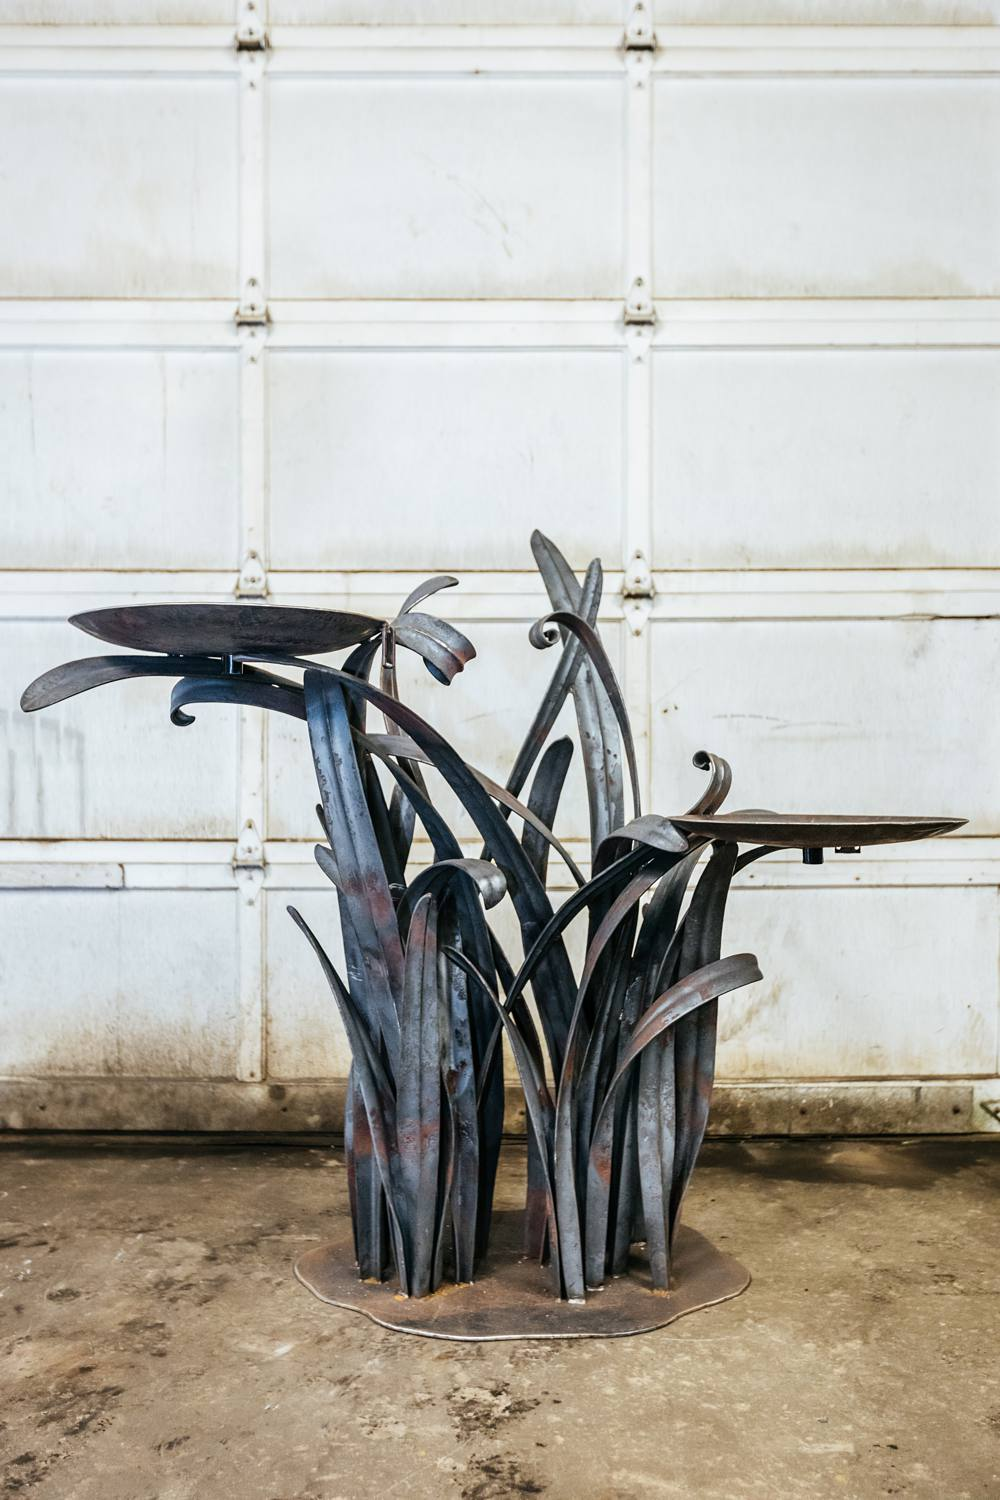 large-metal-water-fountain-large-blades-of-grass